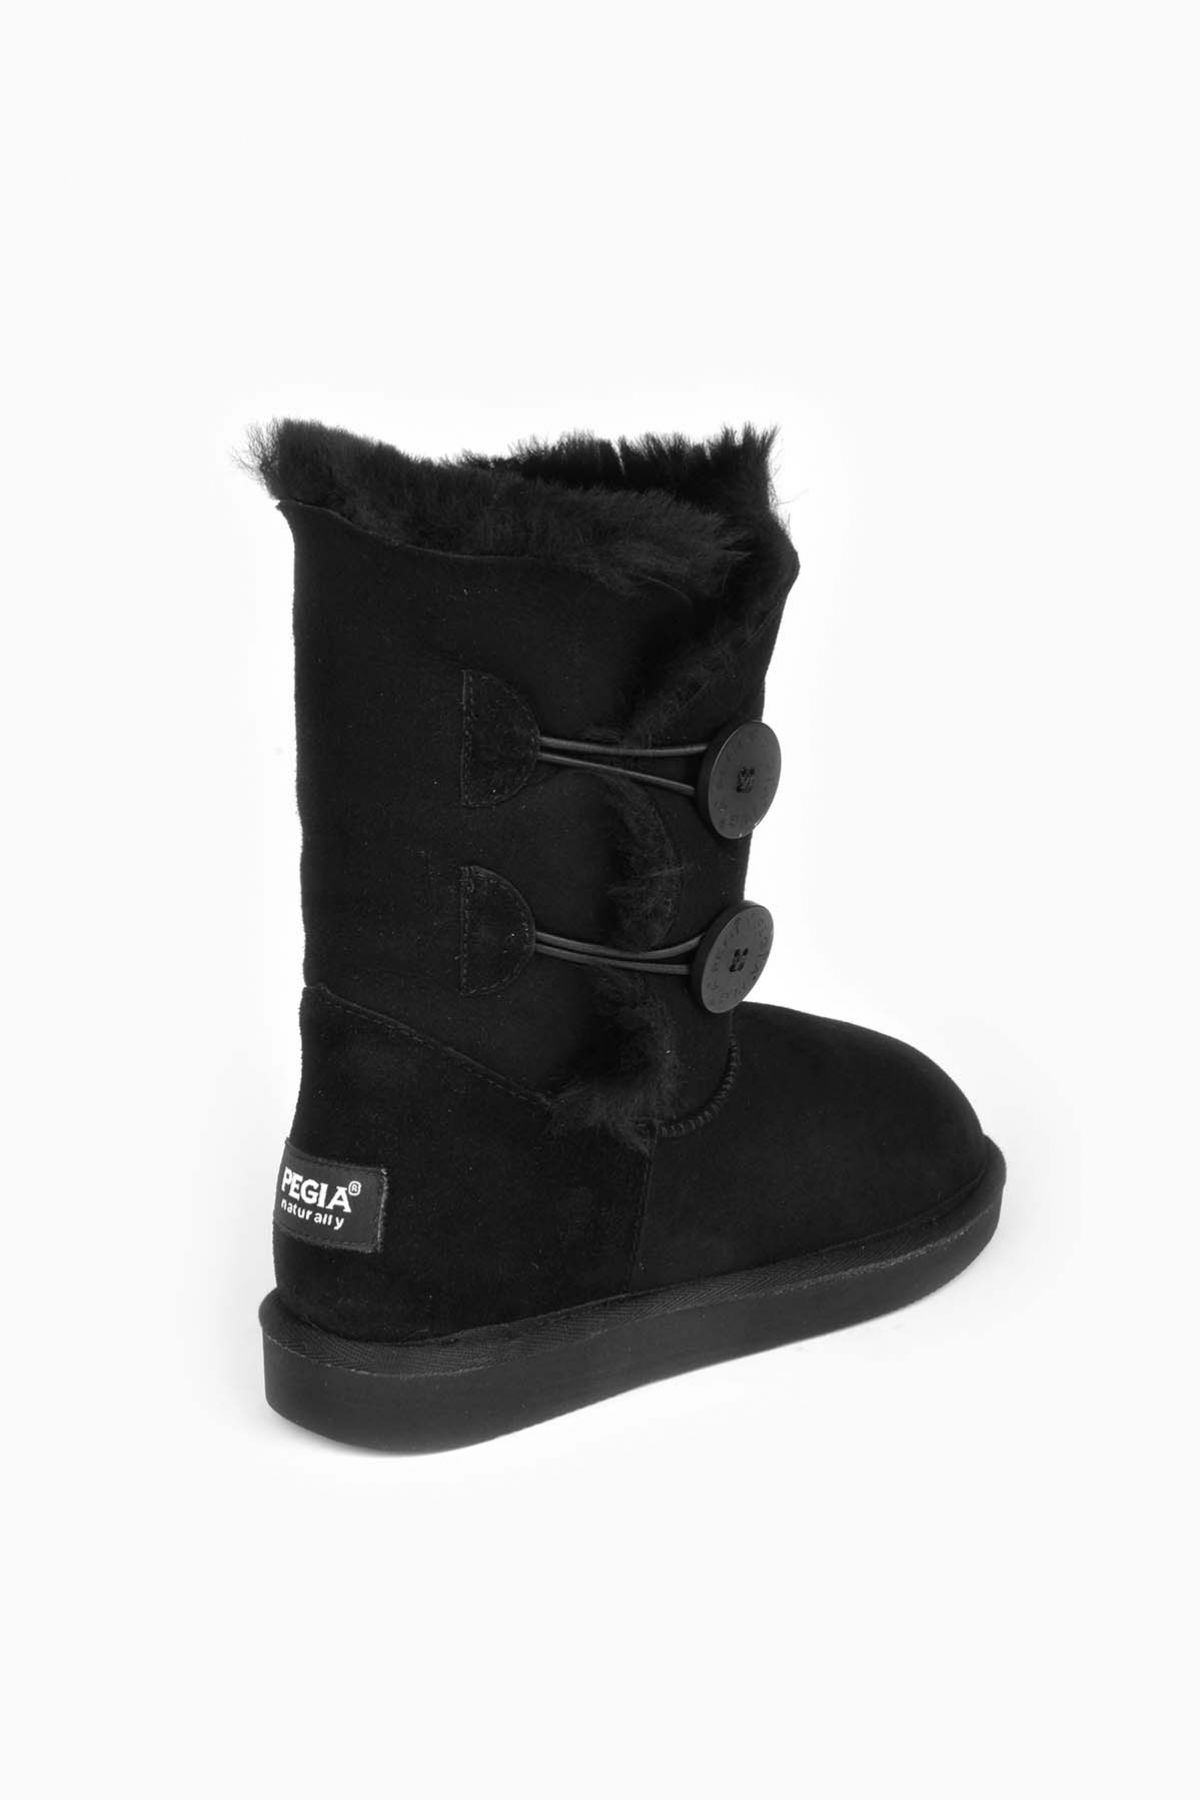 Pegia Women Ugg Style Boots From Genuine Suede And Sheepskin Fur Decorated With Snaps Black